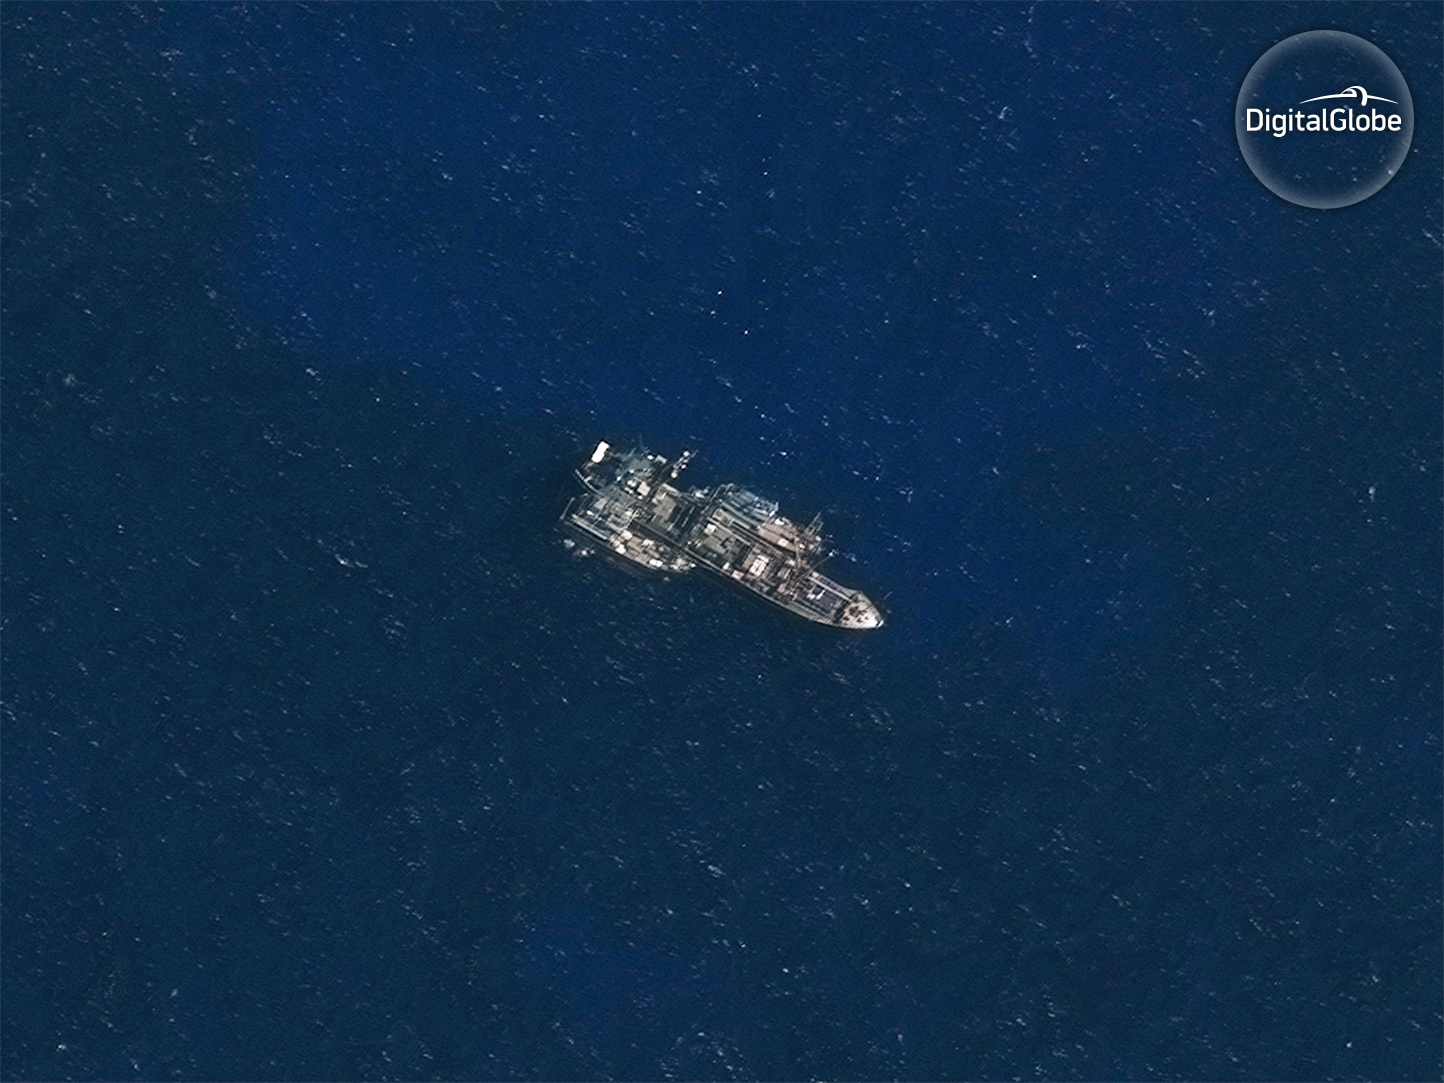 In the Indian Ocean, off the remote Saya de Malha bank, the refrigerated cargo vessel (reefer) Leelawadee was seen with two unidentified likely fishing vessels tied alongside. Image Captured by DigitalGlobe on Nov. 30, 2016. Credit: DigitalGlobe © 2017. Image by DigitalGlobe via SkyTruth.